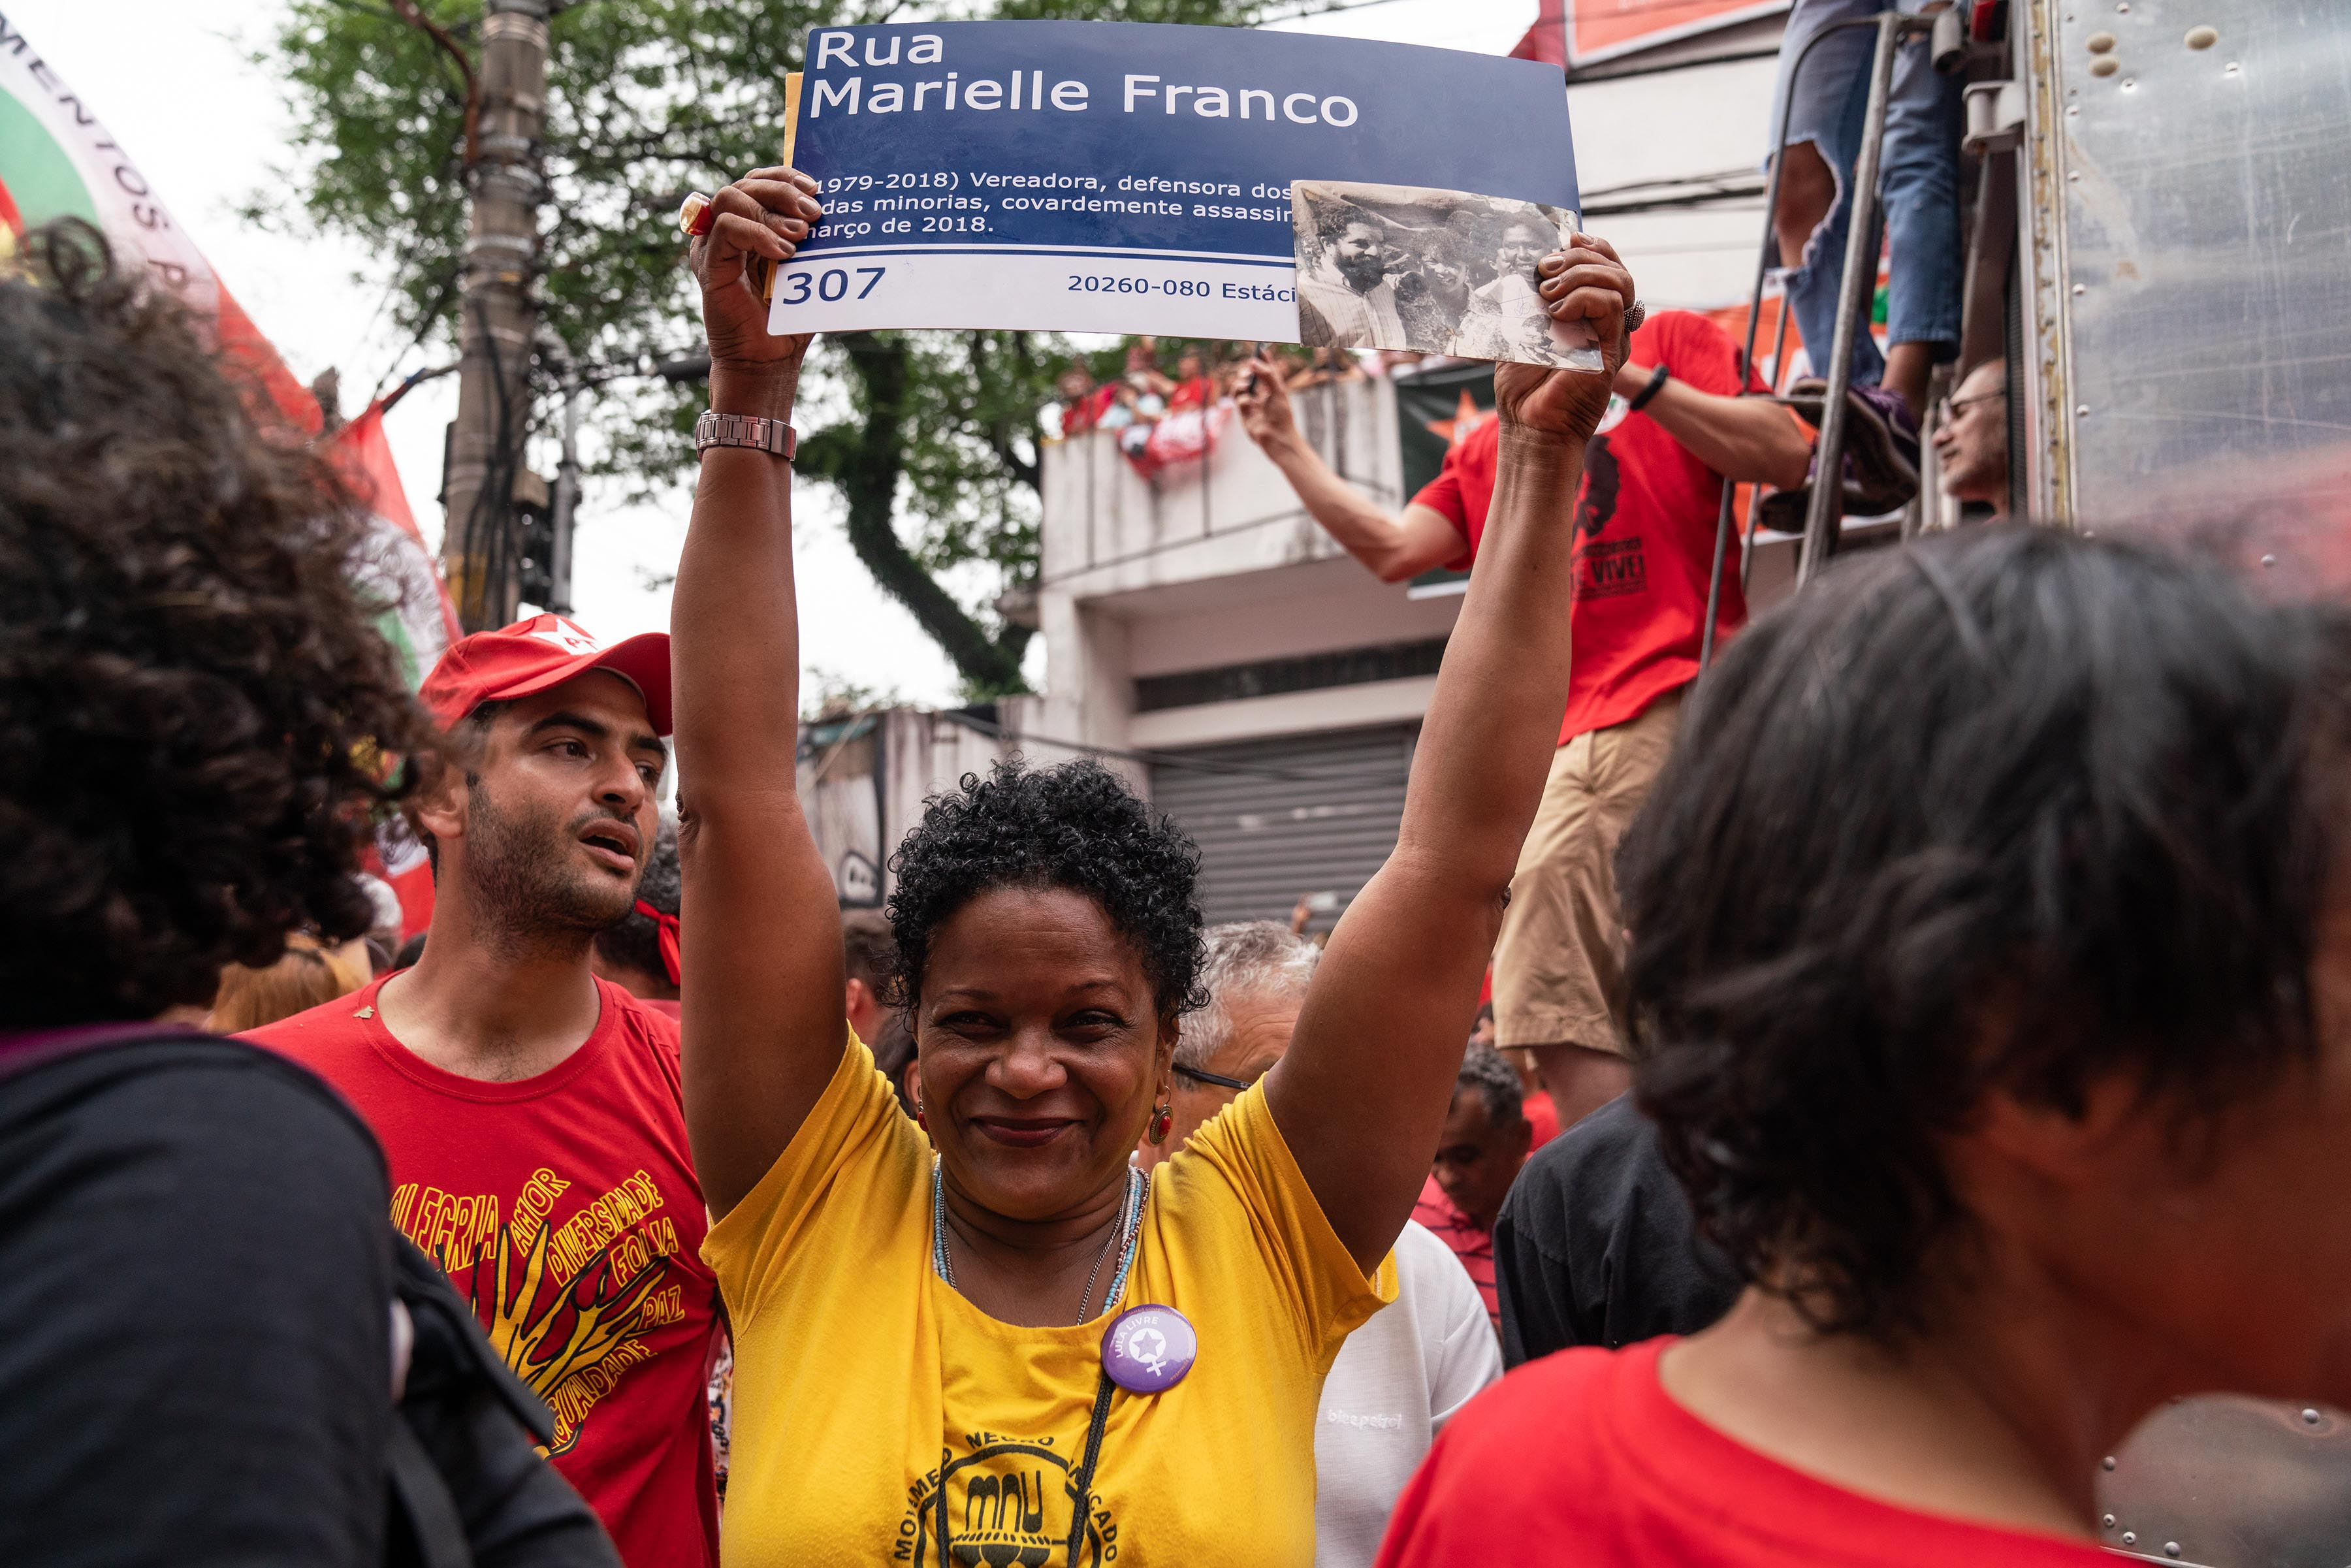 9 November 2019: A woman holds up a poster with the name of the human rights defender, Marielle Franco, who was murdered in Rio de Janeiro last year.